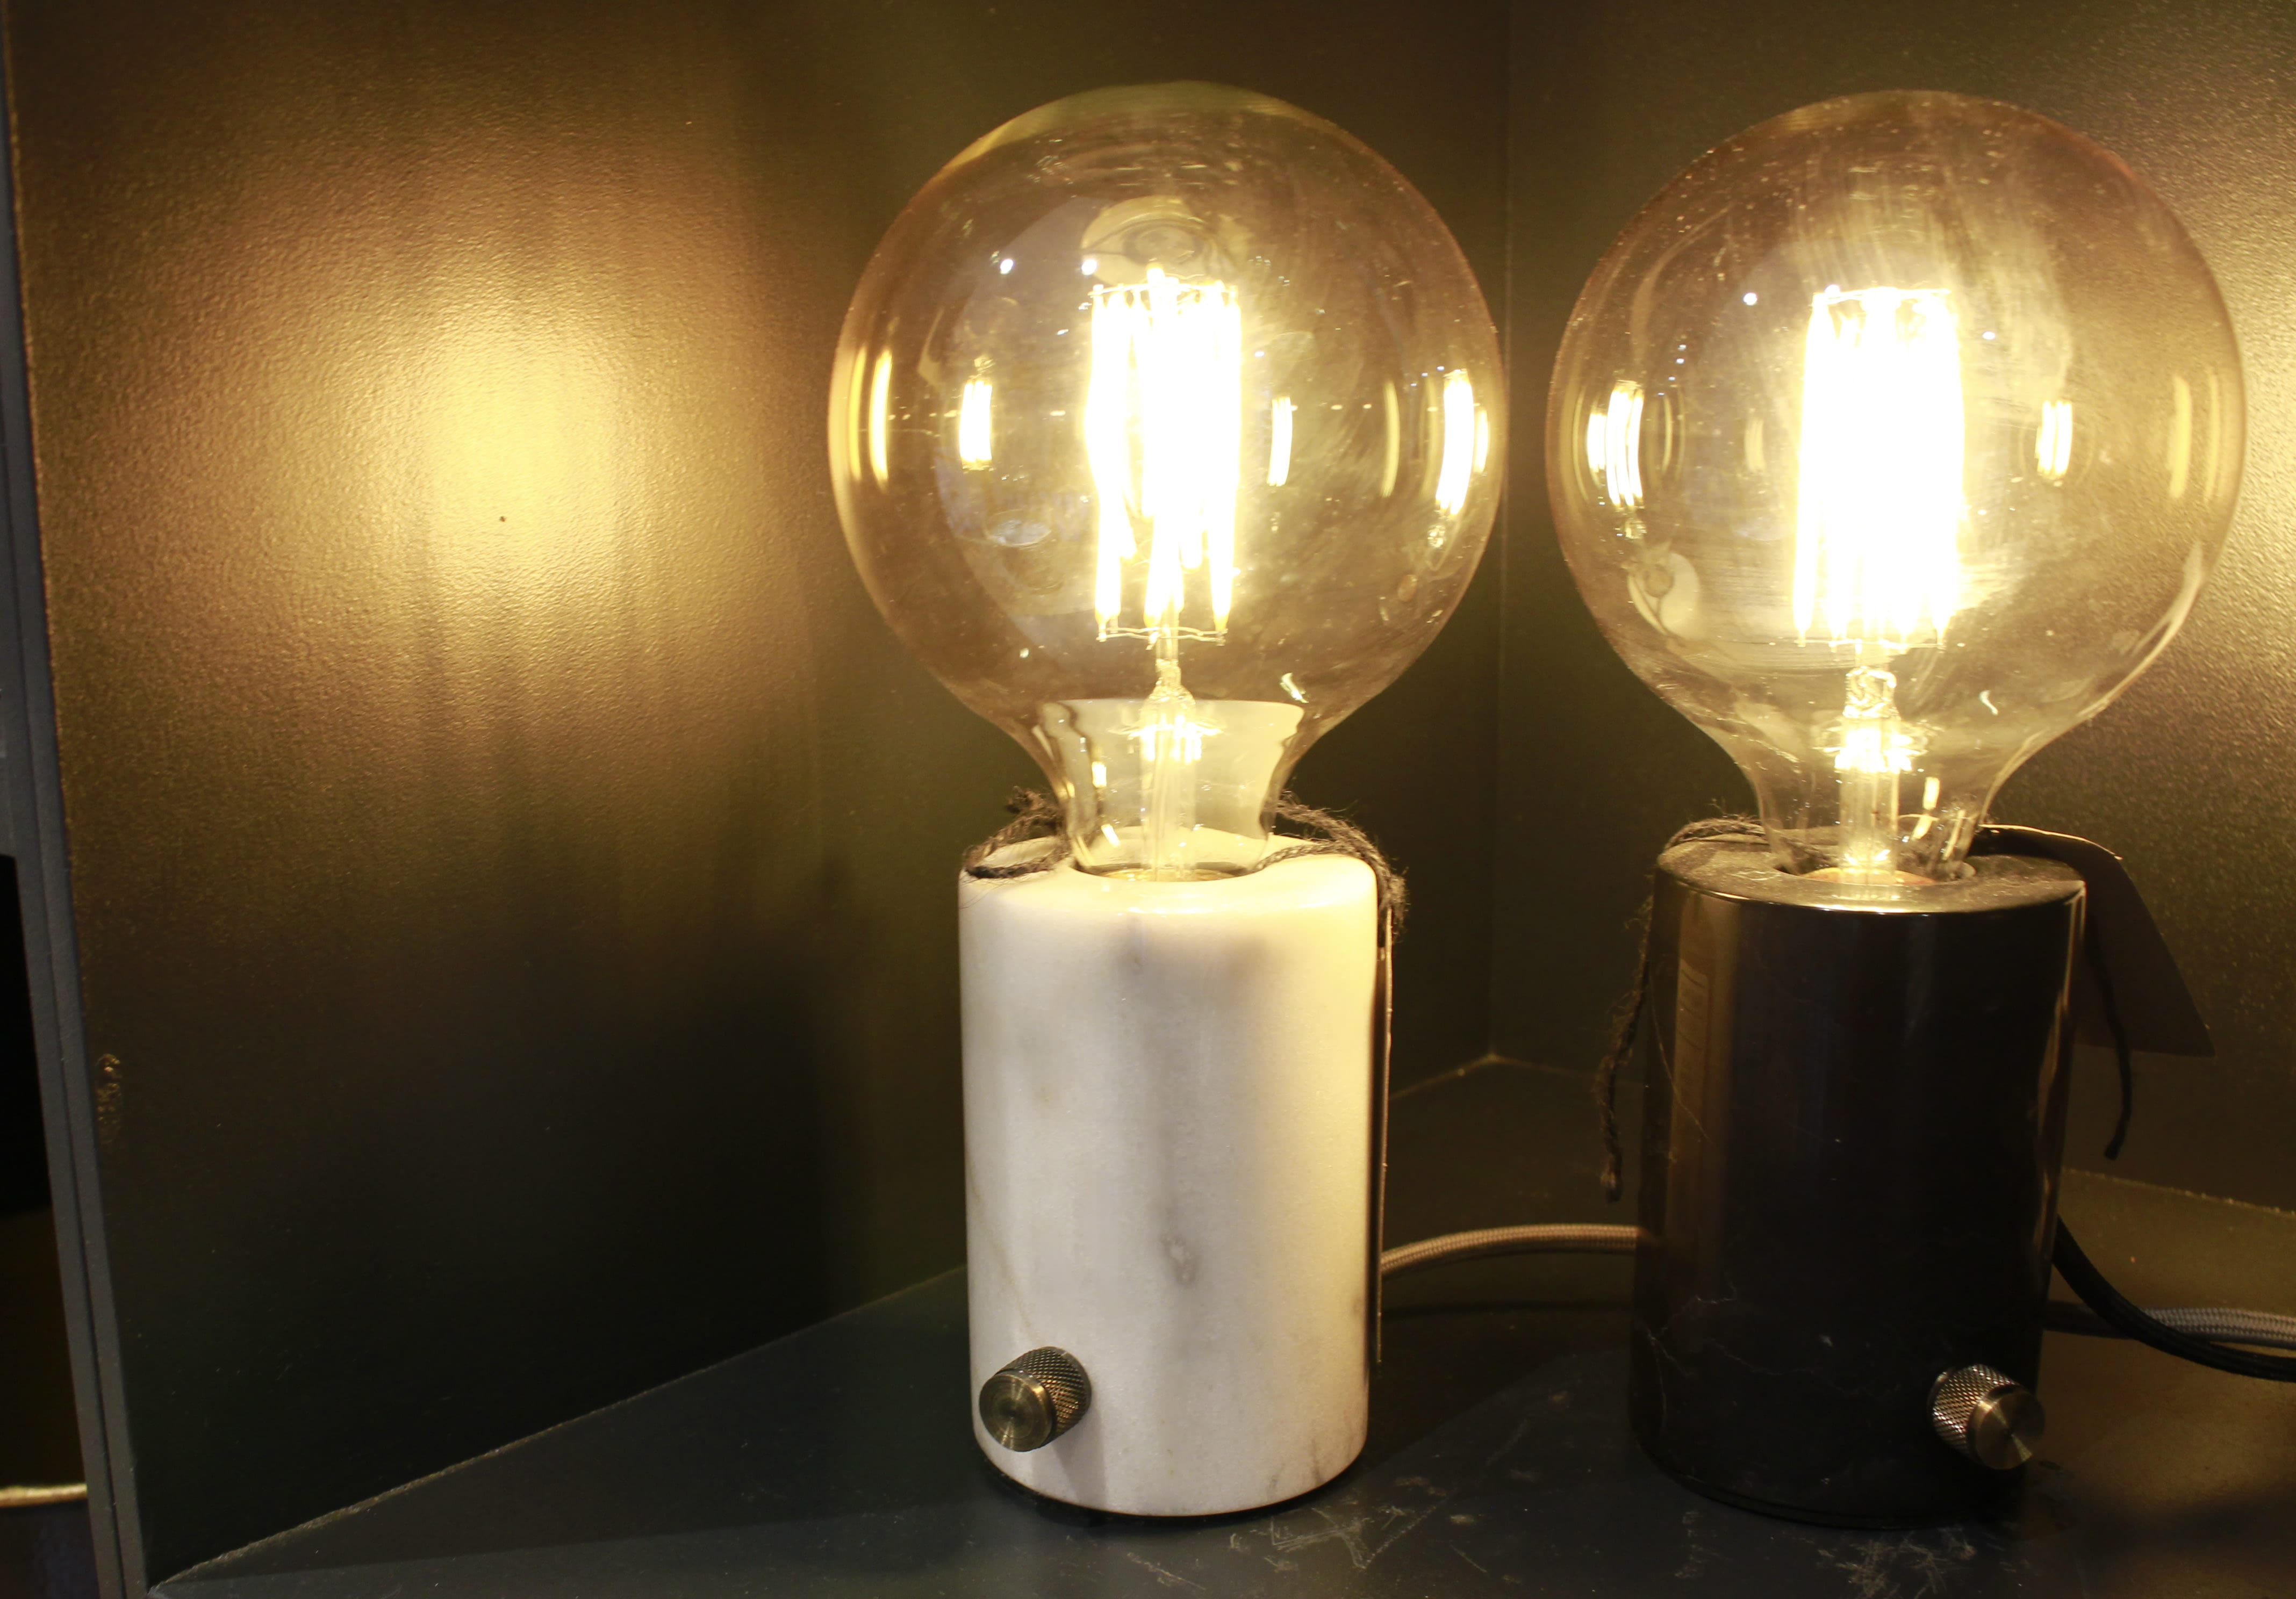 lighting - lampshades and lamp stands